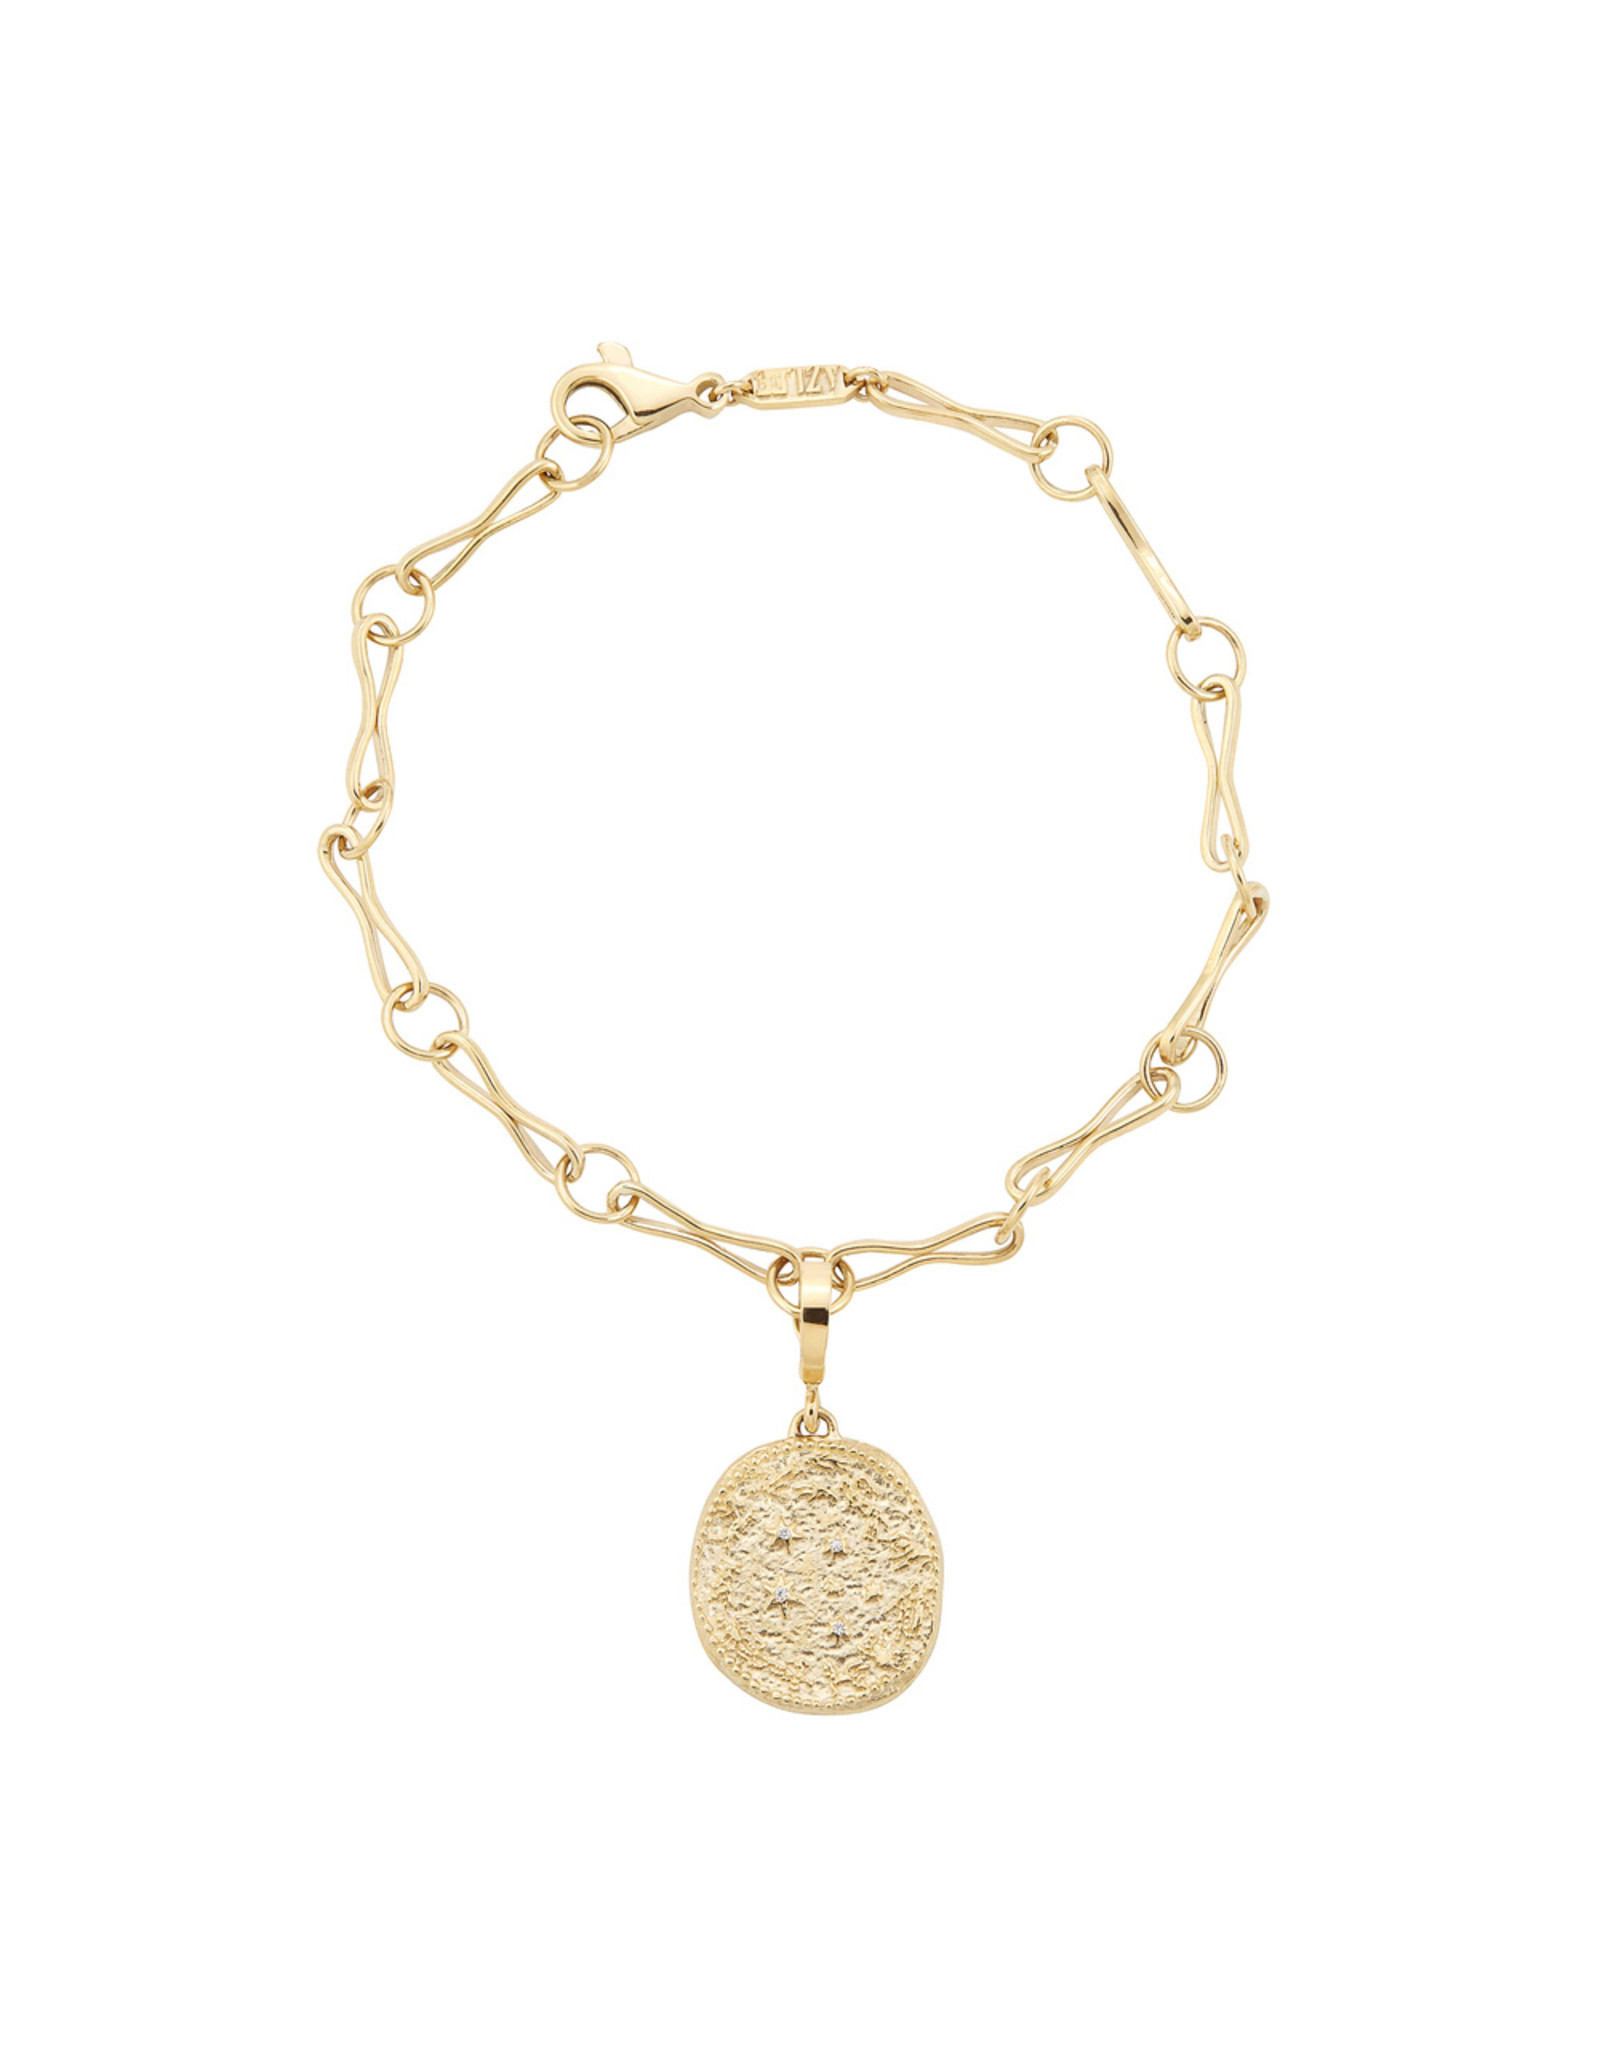 Azlee Azlee Handmade Link Bracelet with Zodia Wheel Coin -Yellow Gold / White Diamond